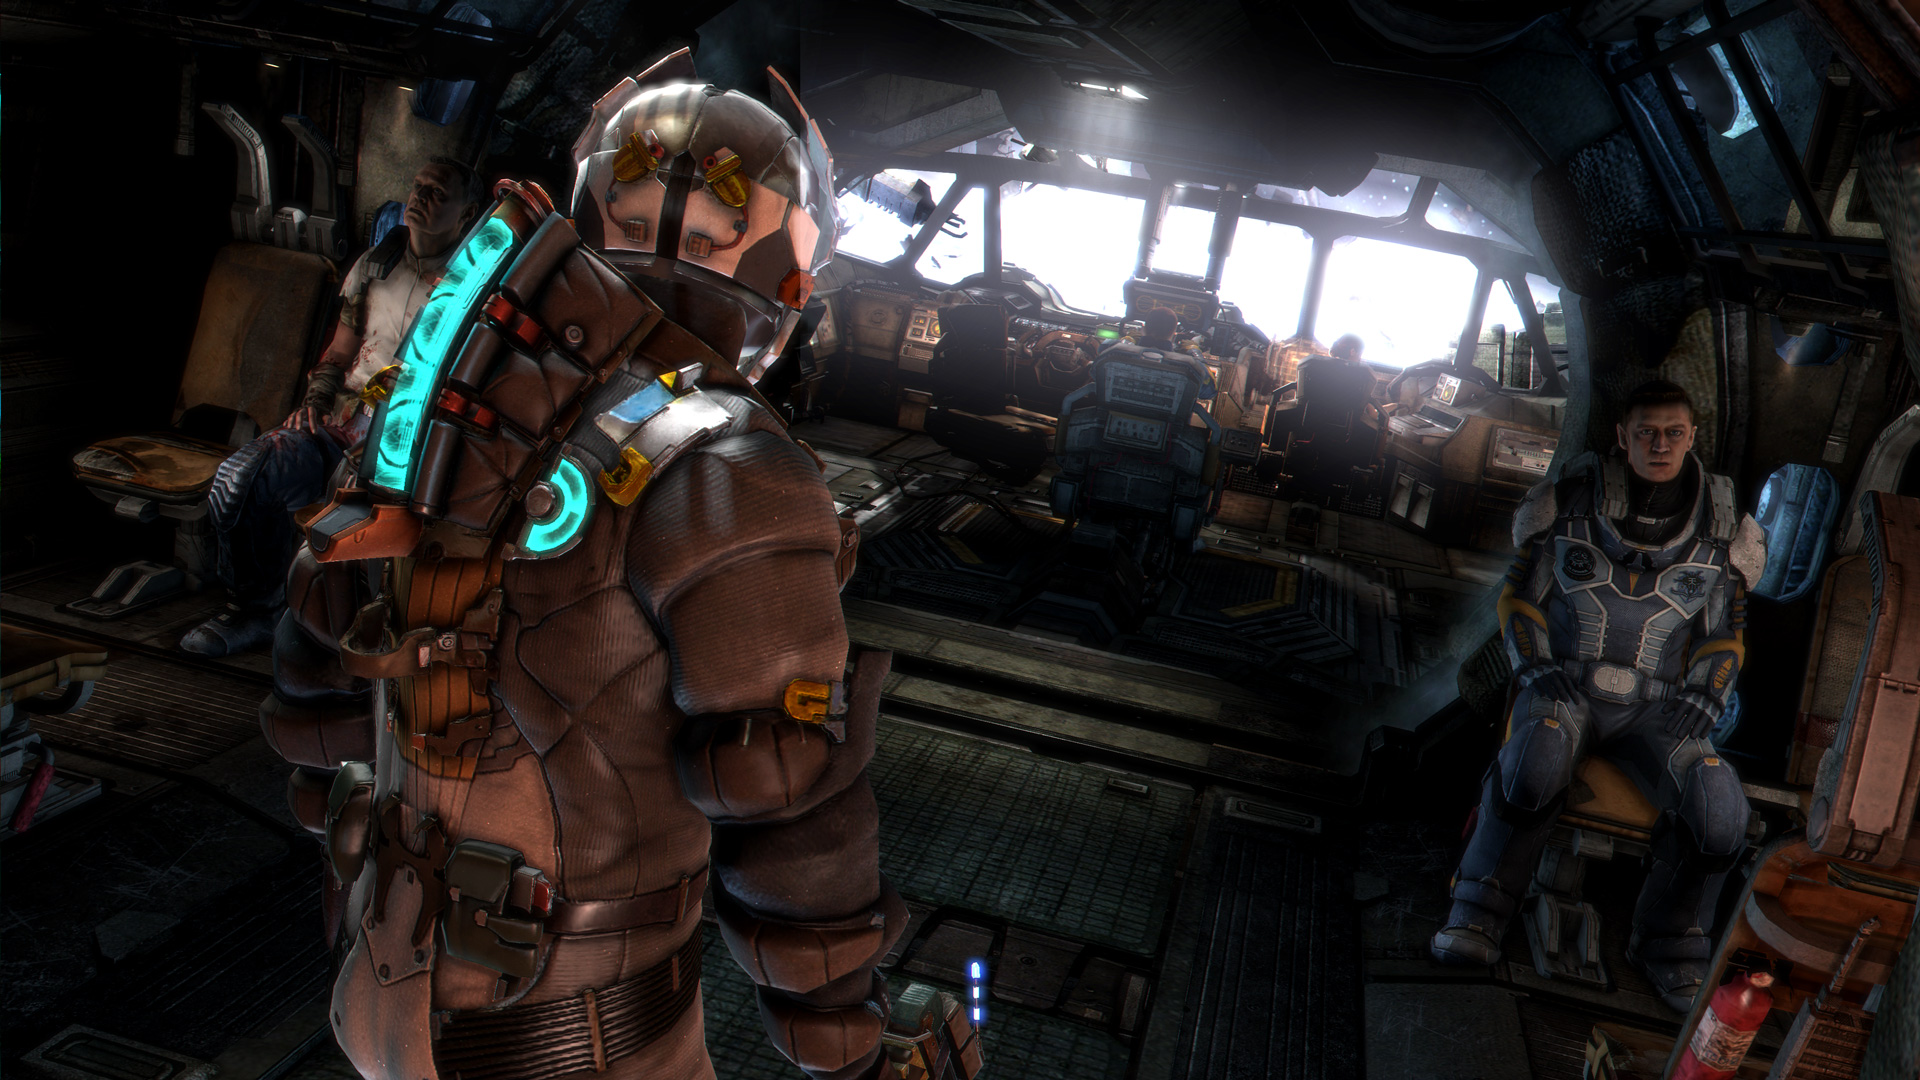 Dead-space-3-review-screen-1